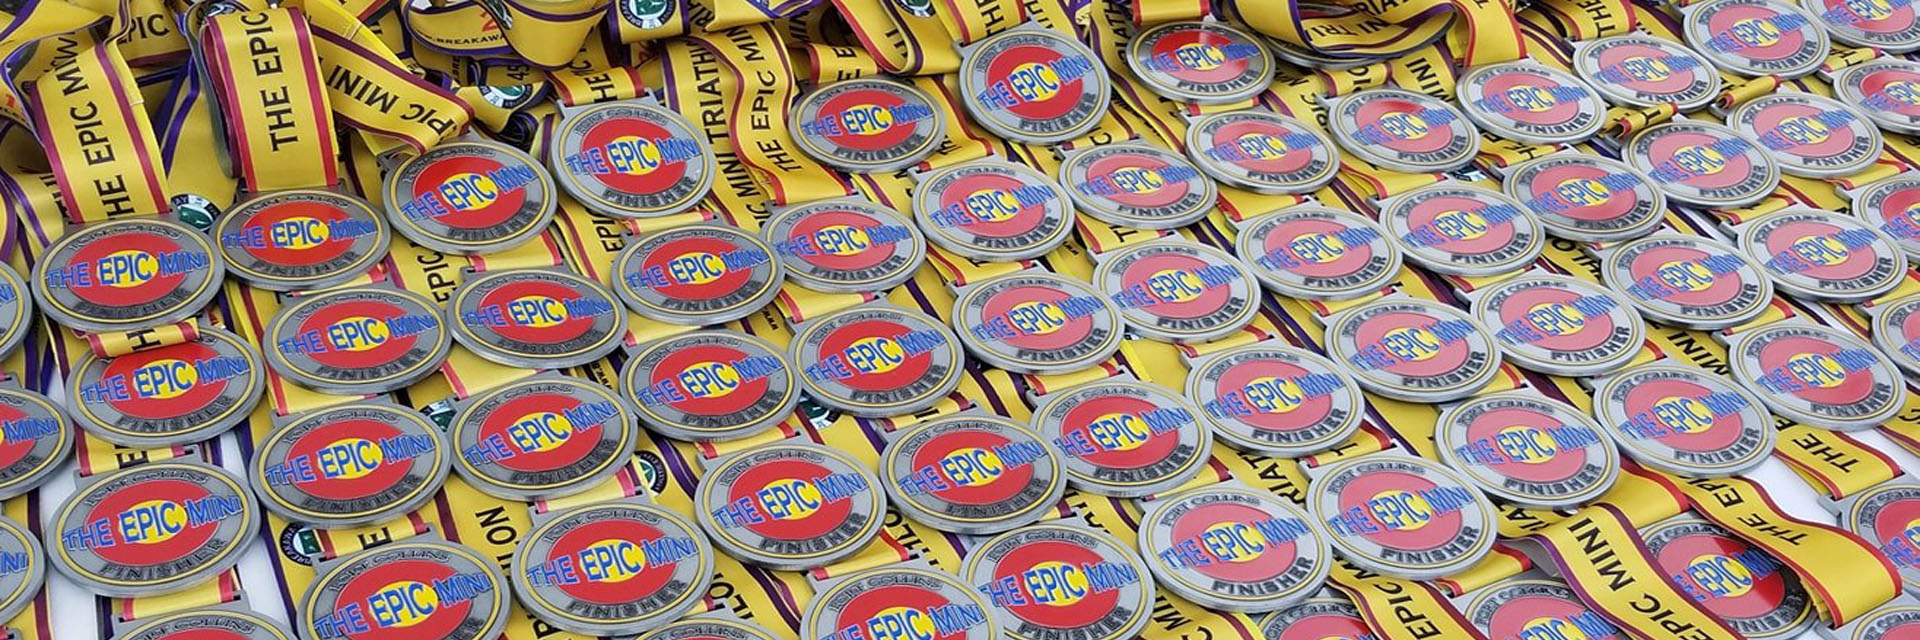 The Epic Mini Triathlon 2019 Finisher Medals